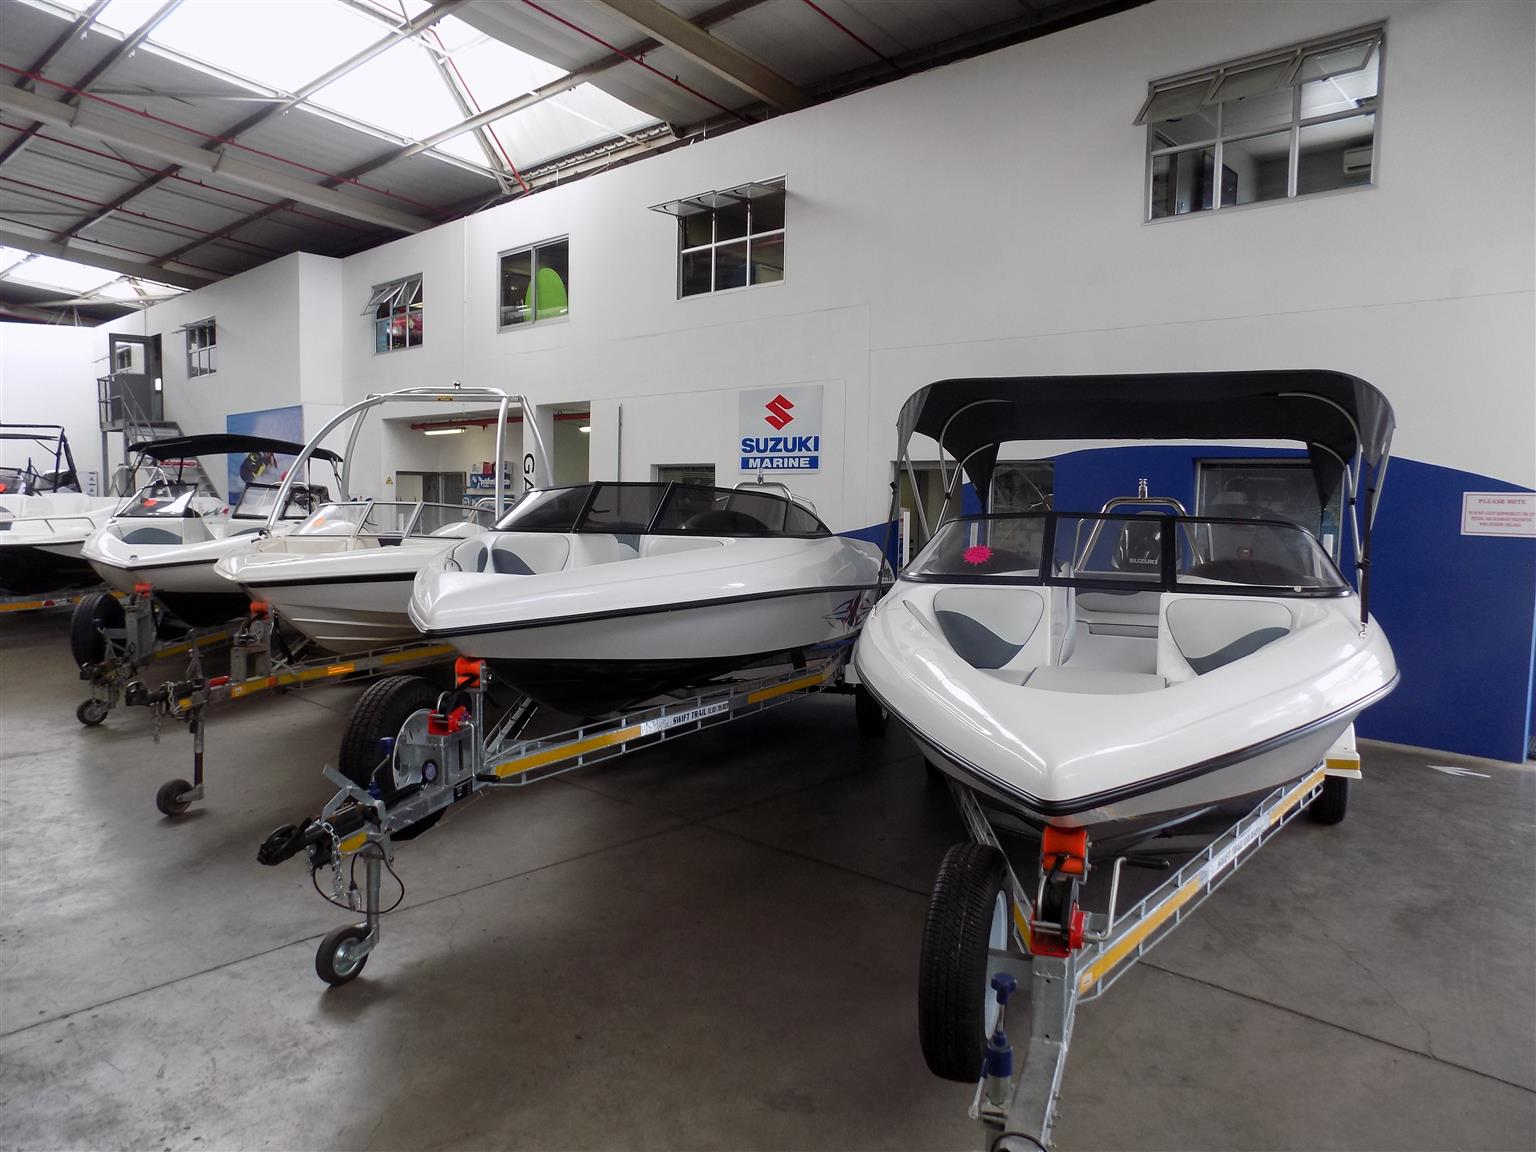 massive clearance summer and year end xmas sale on over 200 boats and jet ski